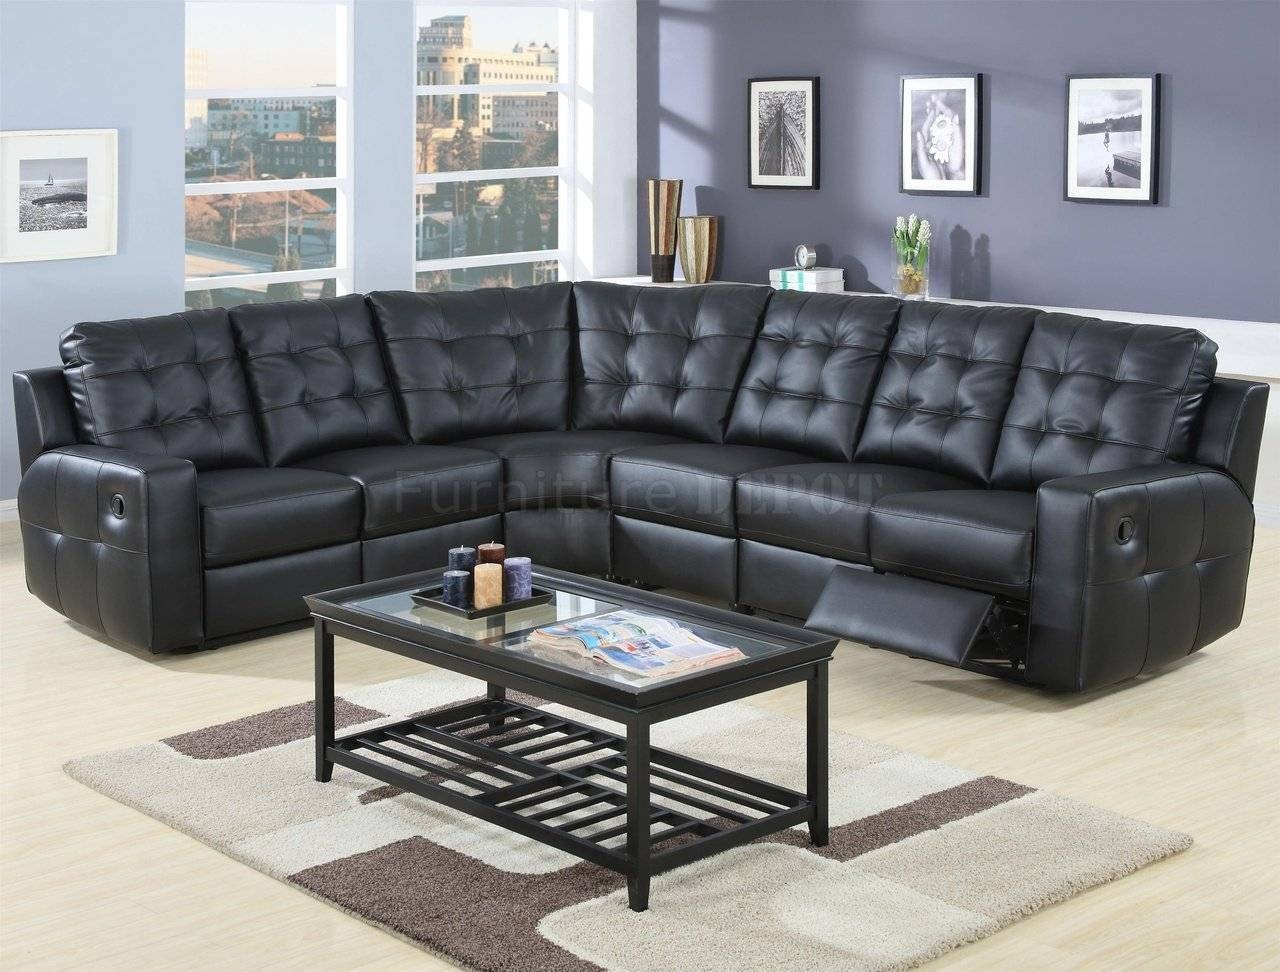 Sofas Center : Astonishingnal Sofas Under With Additional San pertaining to Craigslist Leather Sofa (Image 22 of 30)